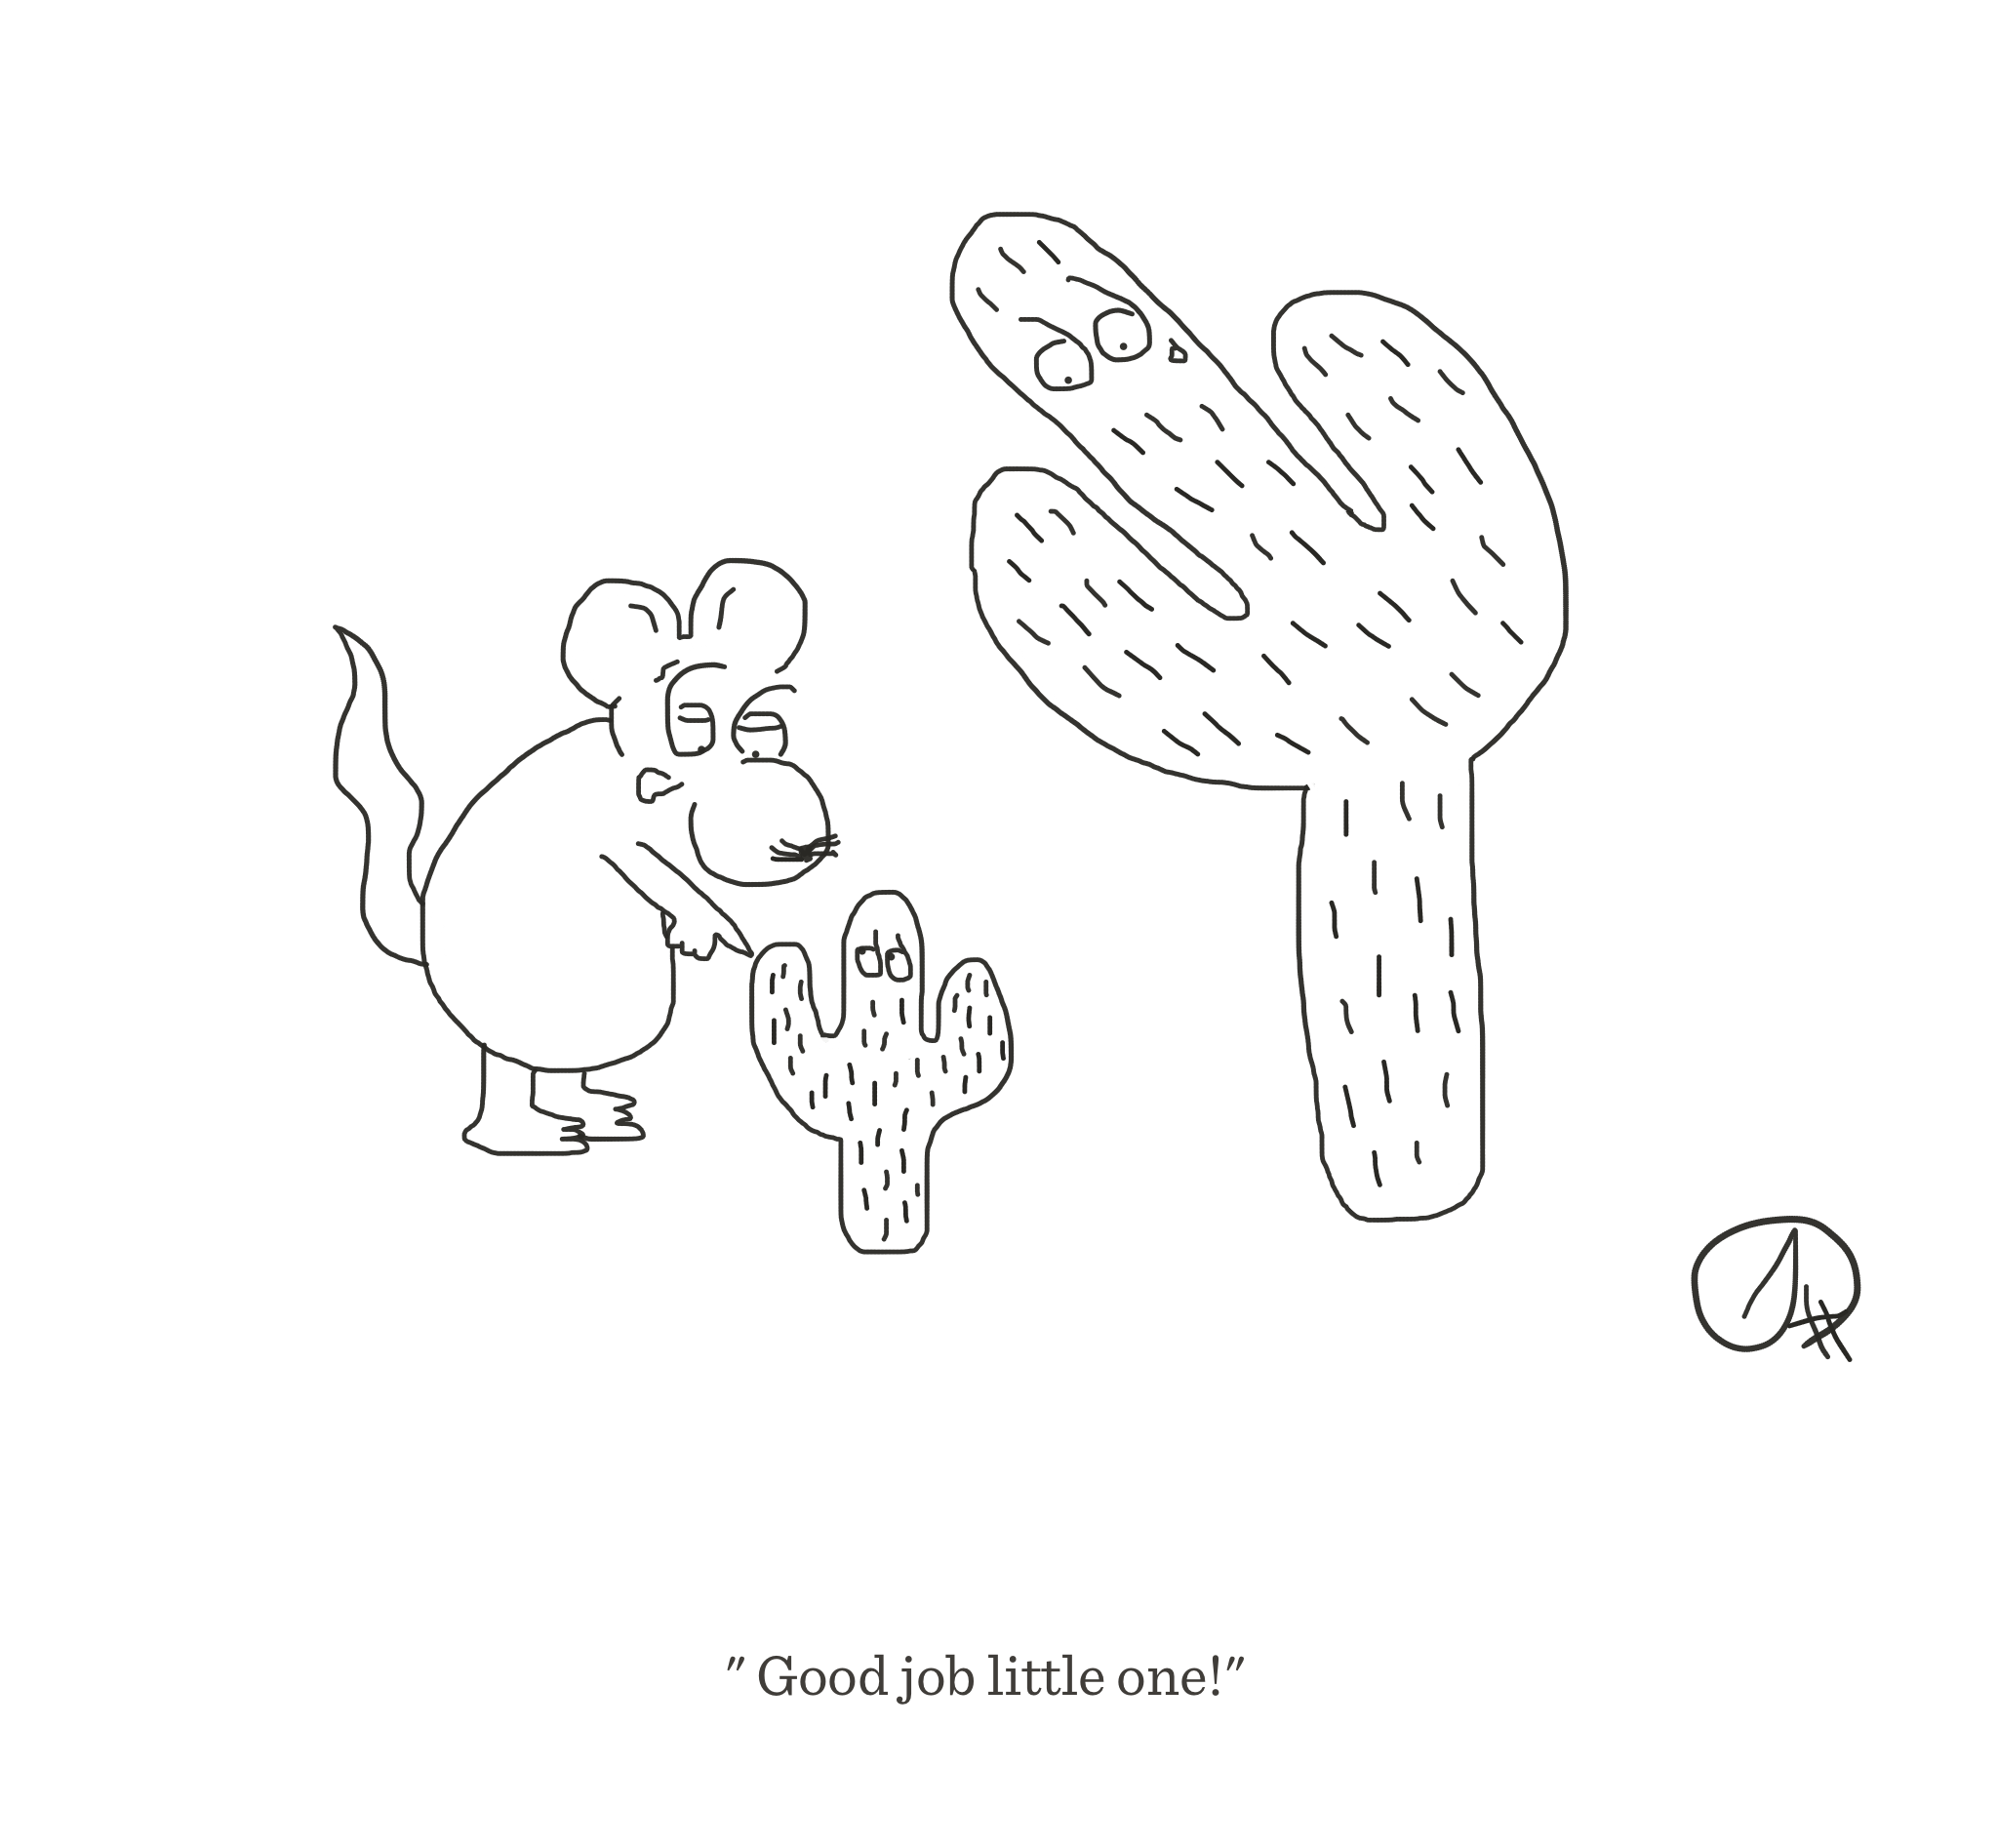 Good job little one, The Happy Rat cartoon